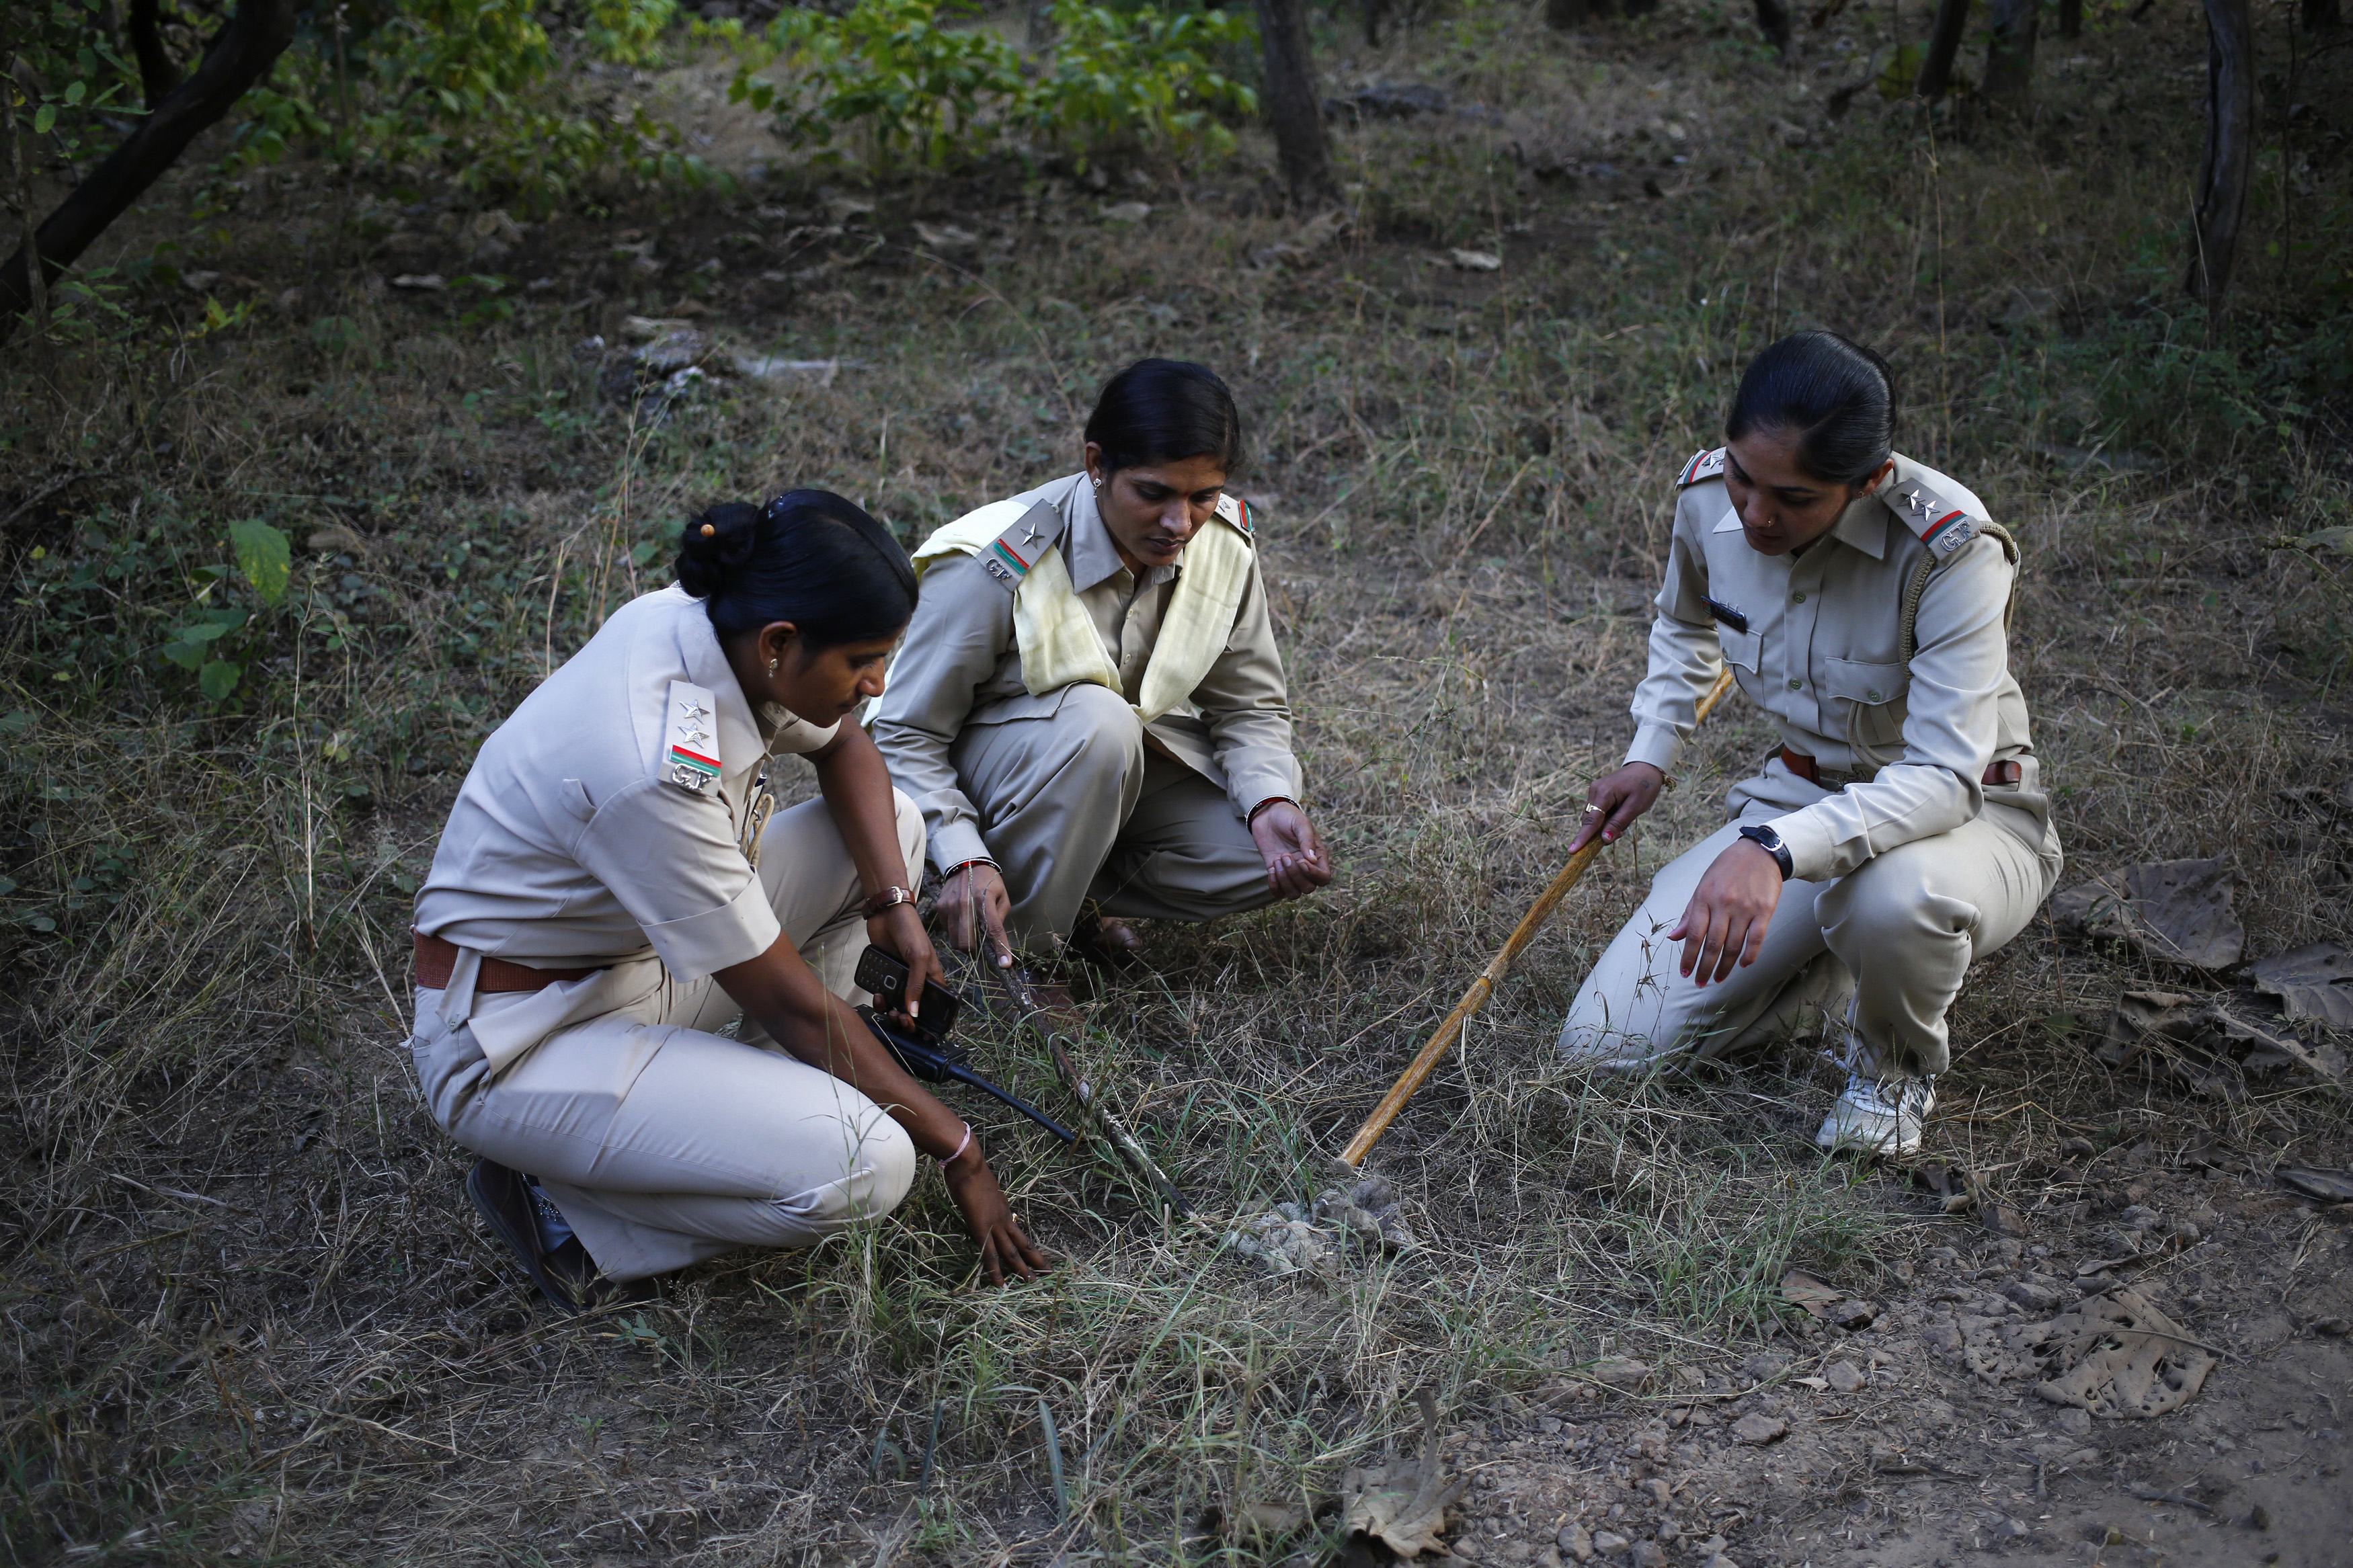 Female forest guards (L-R) Rashila Ben, Sangeeta and Darshana examine a lion faeces as they patrol the Gir National Park and Wildlife Sanctuary in Sasan in the western Indian state of Gujarat December 1, 2014. The sanctuary, which is home to Asiatic lions in India, has an area of 1,412 sq km in which female guards were employed for the first time in India in 2007. The guards fetch a monthly salary of around $148 for working almost 12 hours a day, six days a week, said one of the female guards. Picture taken December 1, 2014. REUTERS/Anindito Mukherjee (INDIA - Tags: ANIMALS BUSINESS EMPLOYMENT SOCIETY) - RTR4H9AC